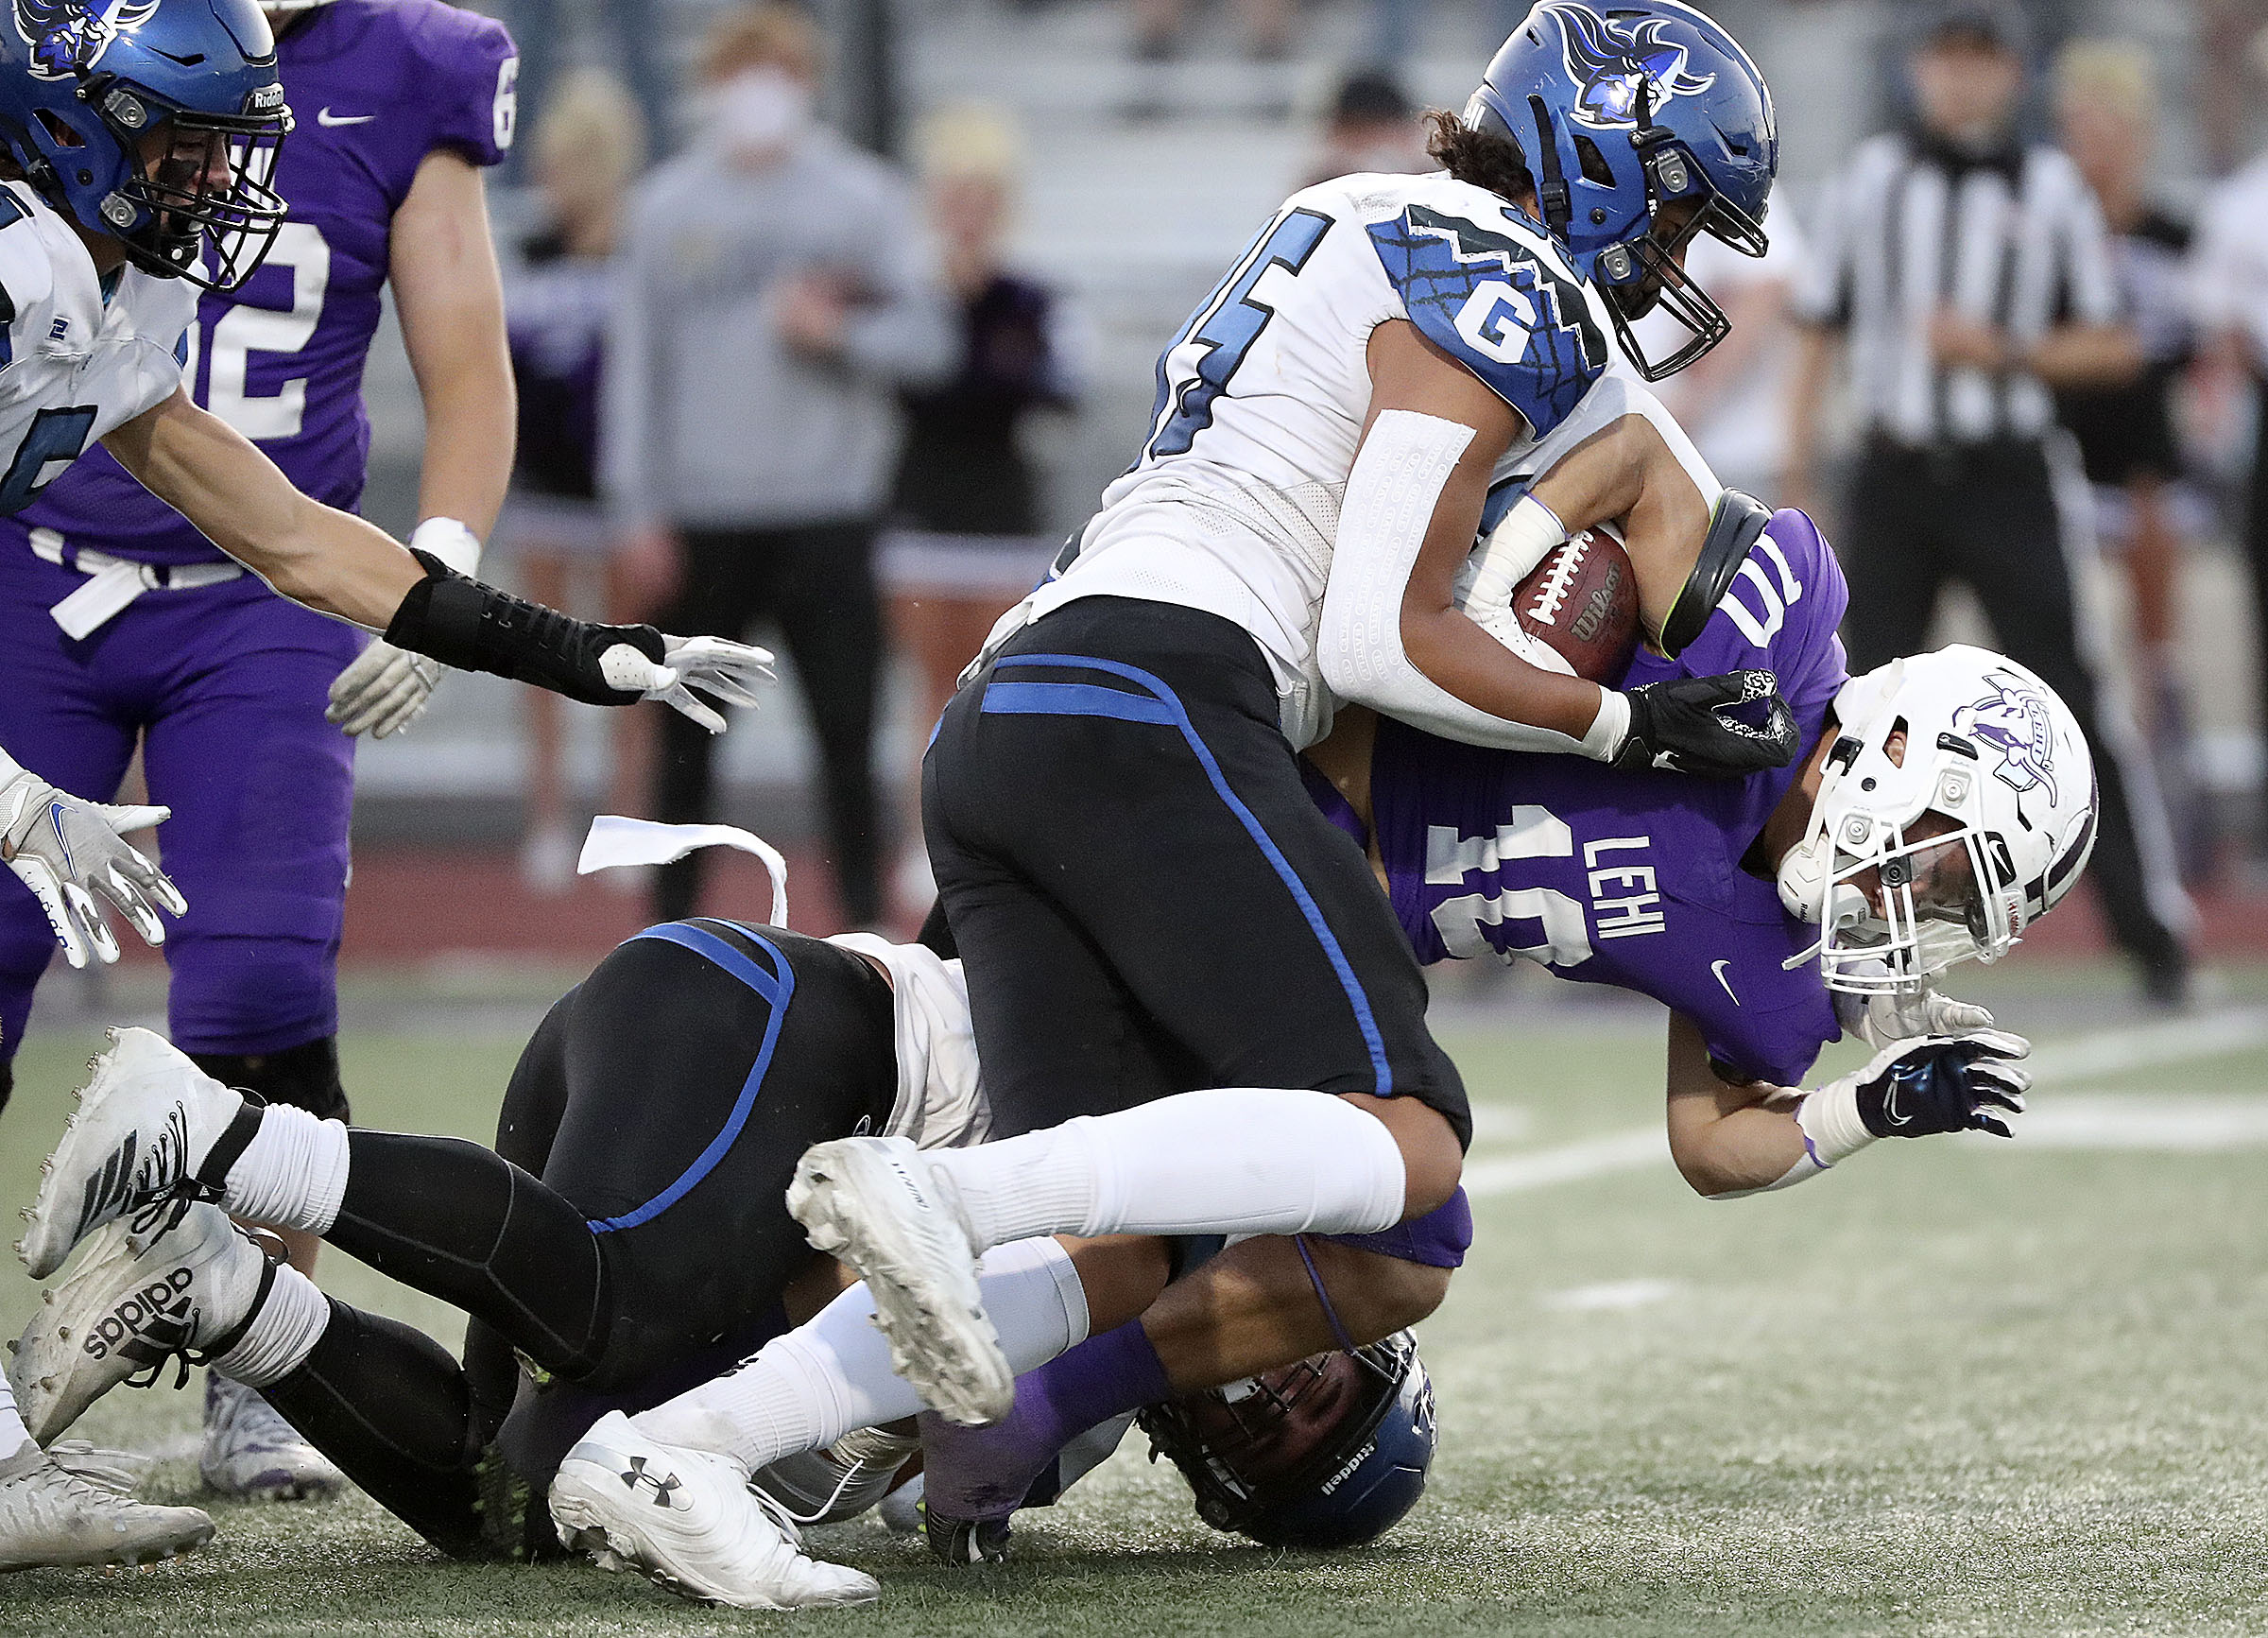 Pleasant Grove's Isaac Vaha tackles Lehi's Chandler Jenkins during a football game at Lehi High School in Lehi on Friday, Sept. 11, 2020.